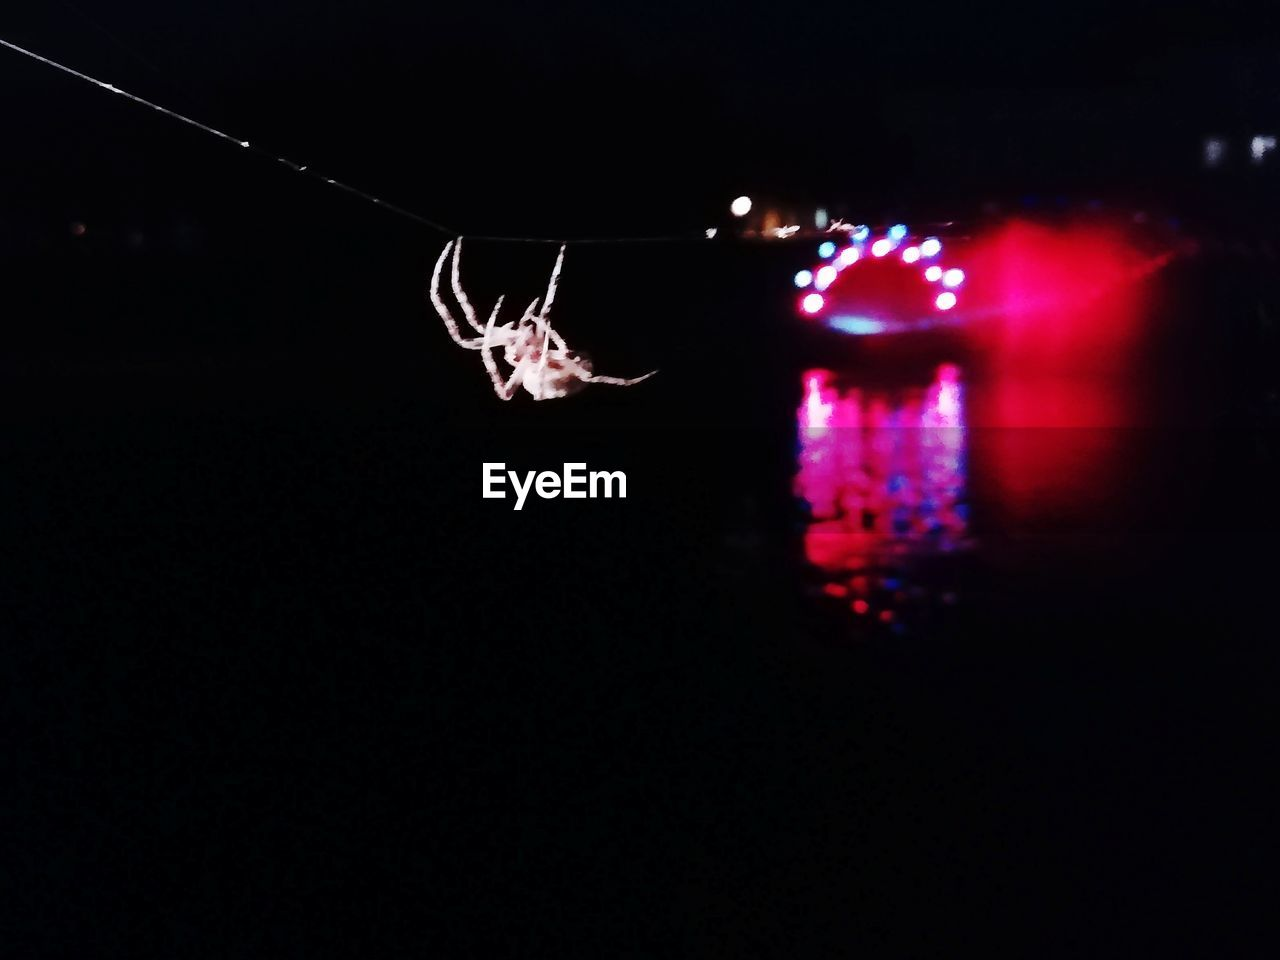 night, illuminated, copy space, no people, close-up, lighting equipment, nature, outdoors, dark, focus on foreground, motion, water, black background, glowing, light - natural phenomenon, purple, fragility, animal, nightlife